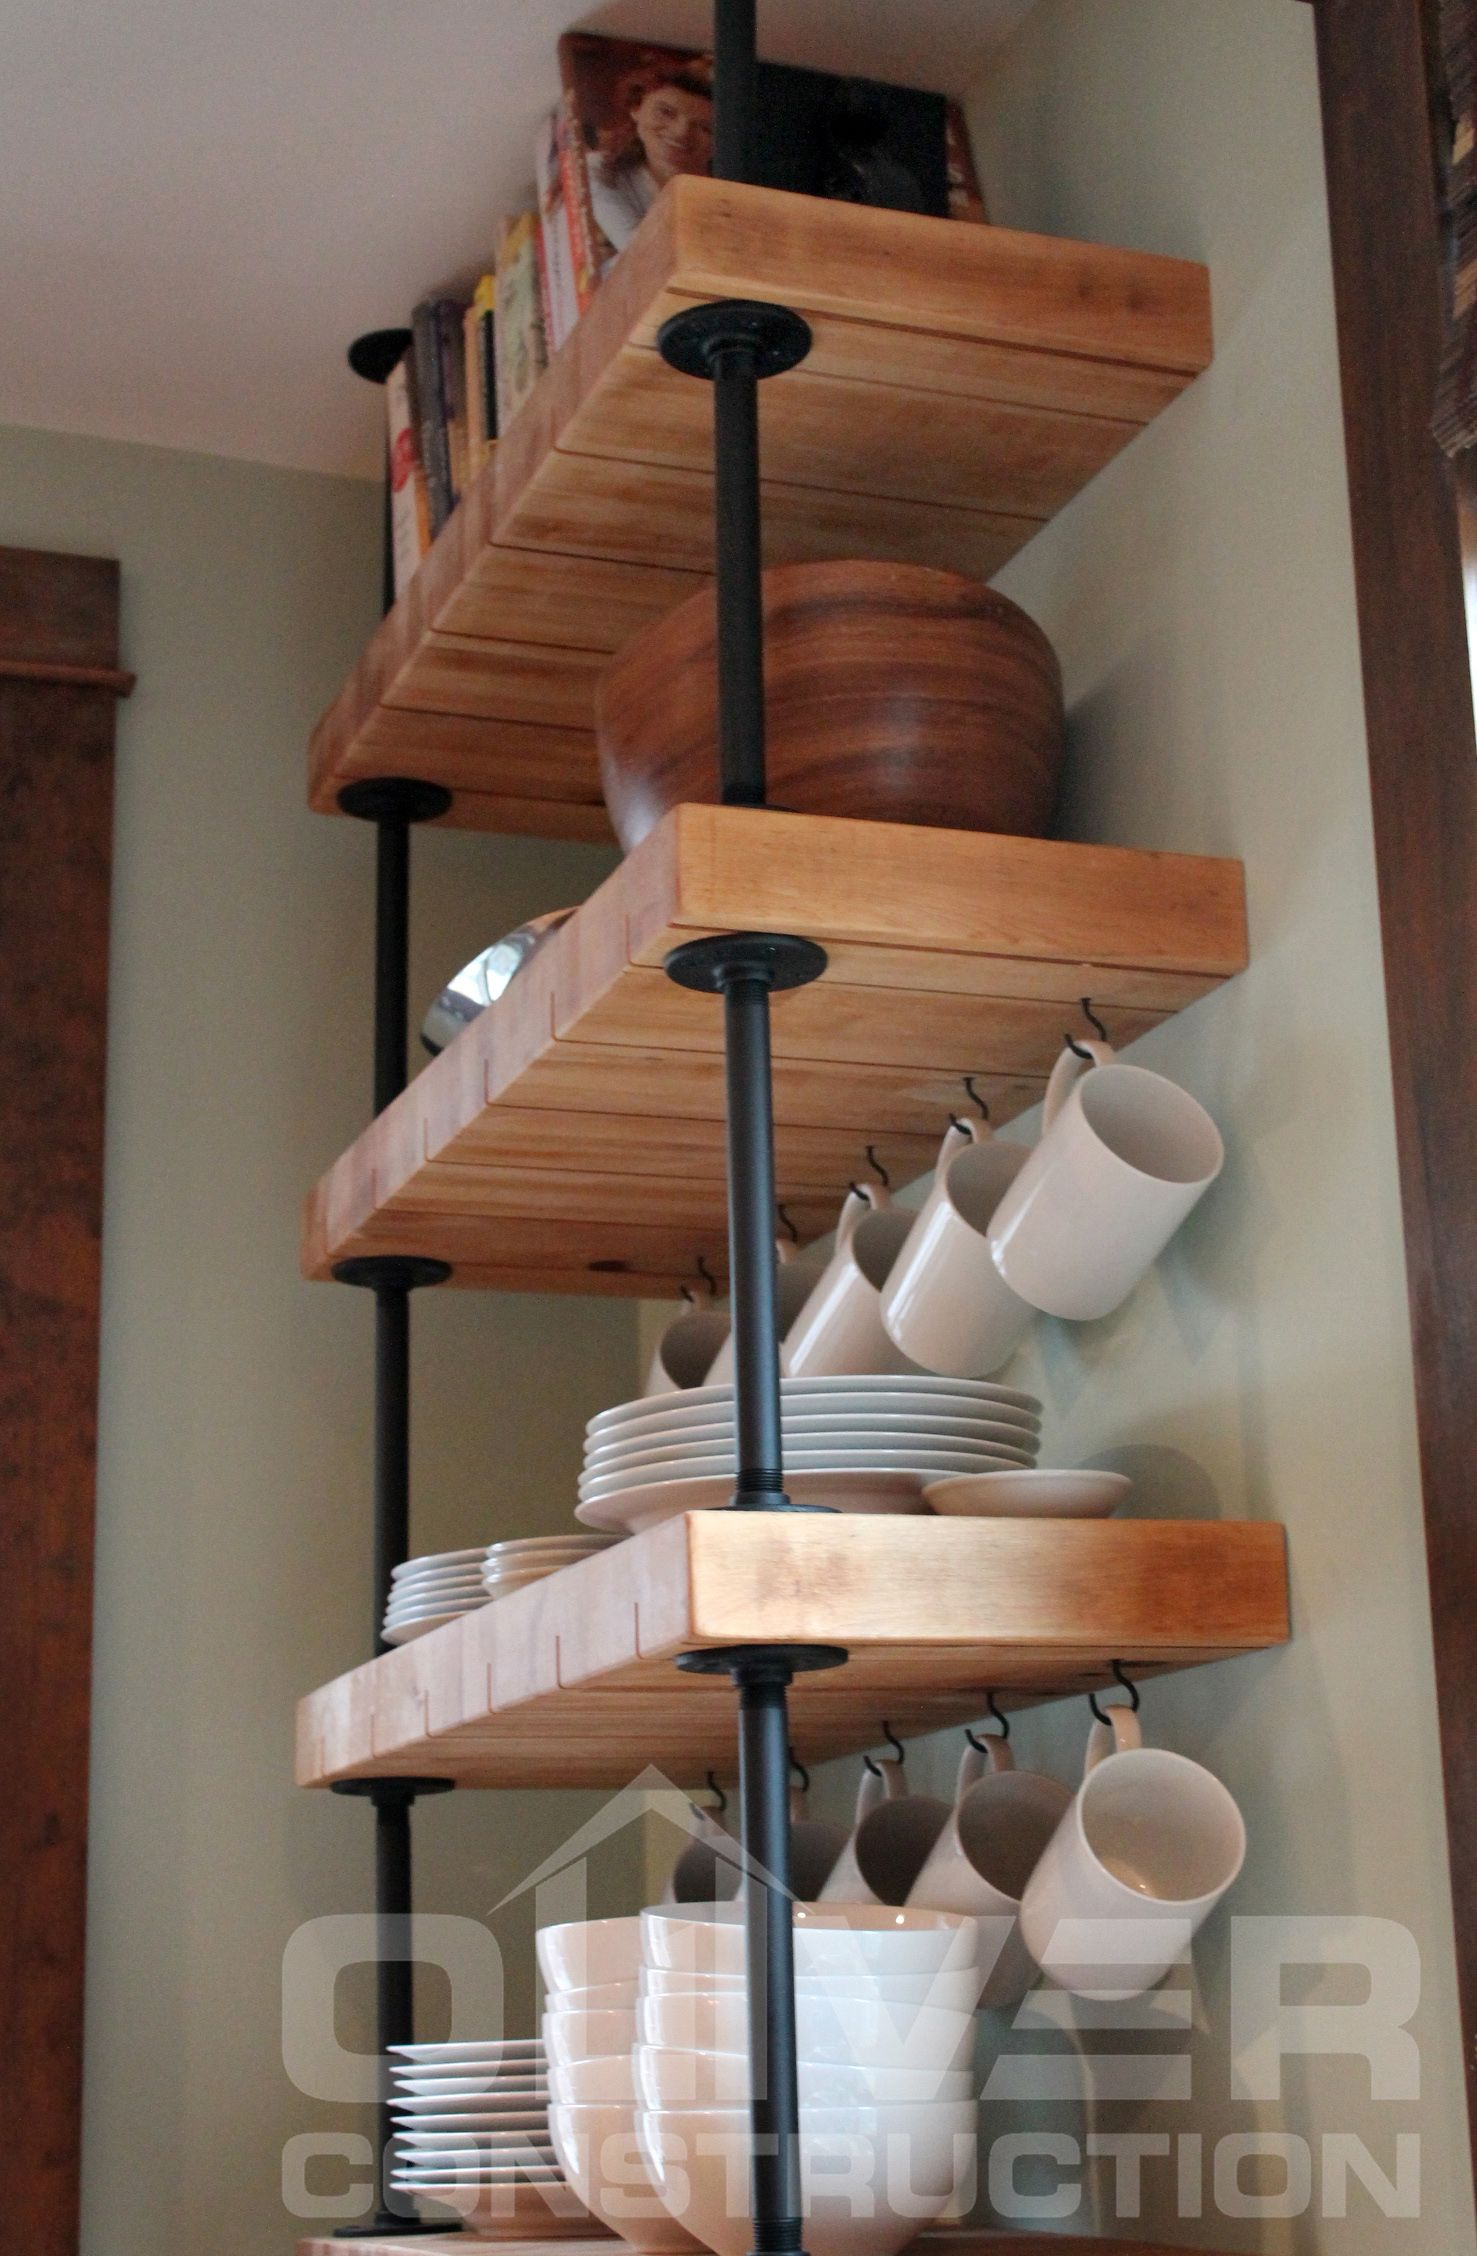 Reclaimed Butcher Block Shelves Suspended With Black Gas Pipe By Oliver Construction Llc Photo